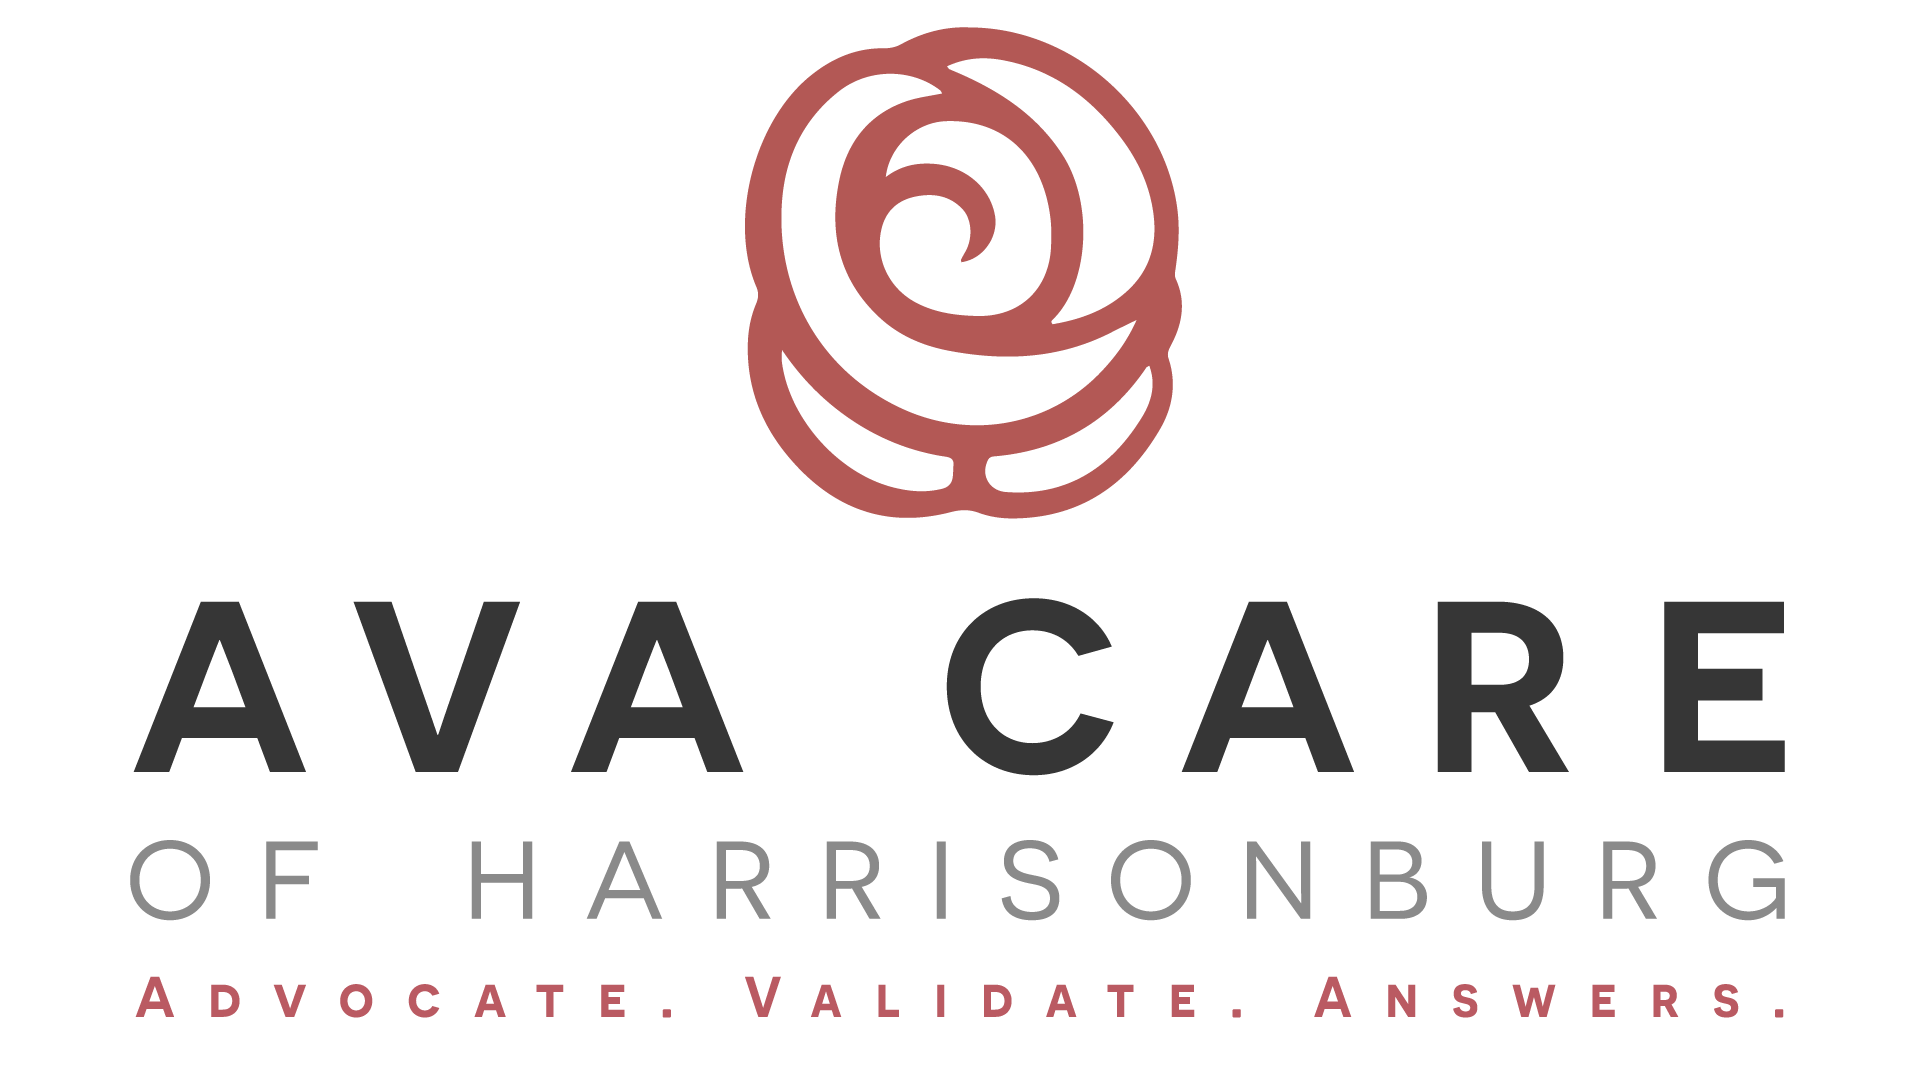 AVA CARE LOGO-01.png